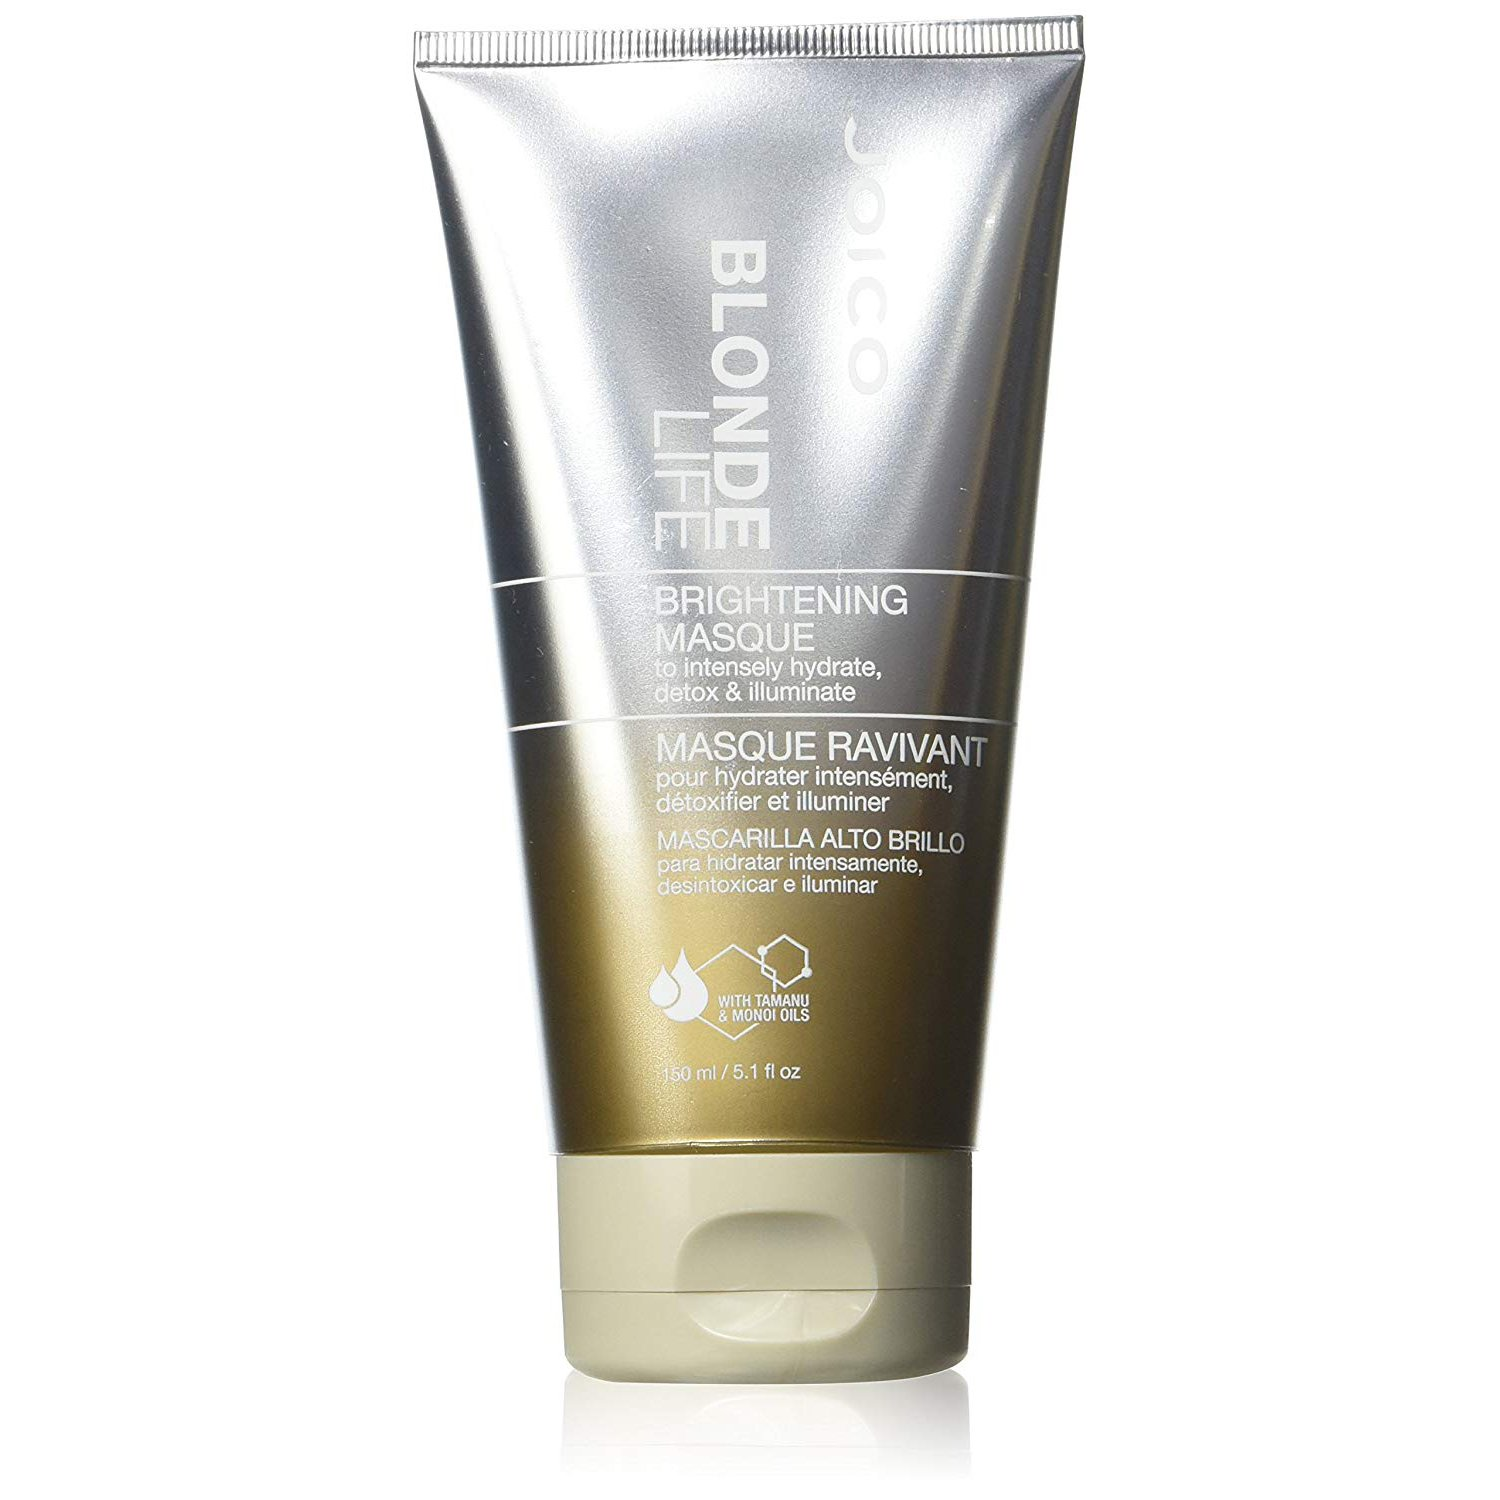 Joico Blonde Life Brightening Masque, 5.1 Ounce by Joico (Image #1)